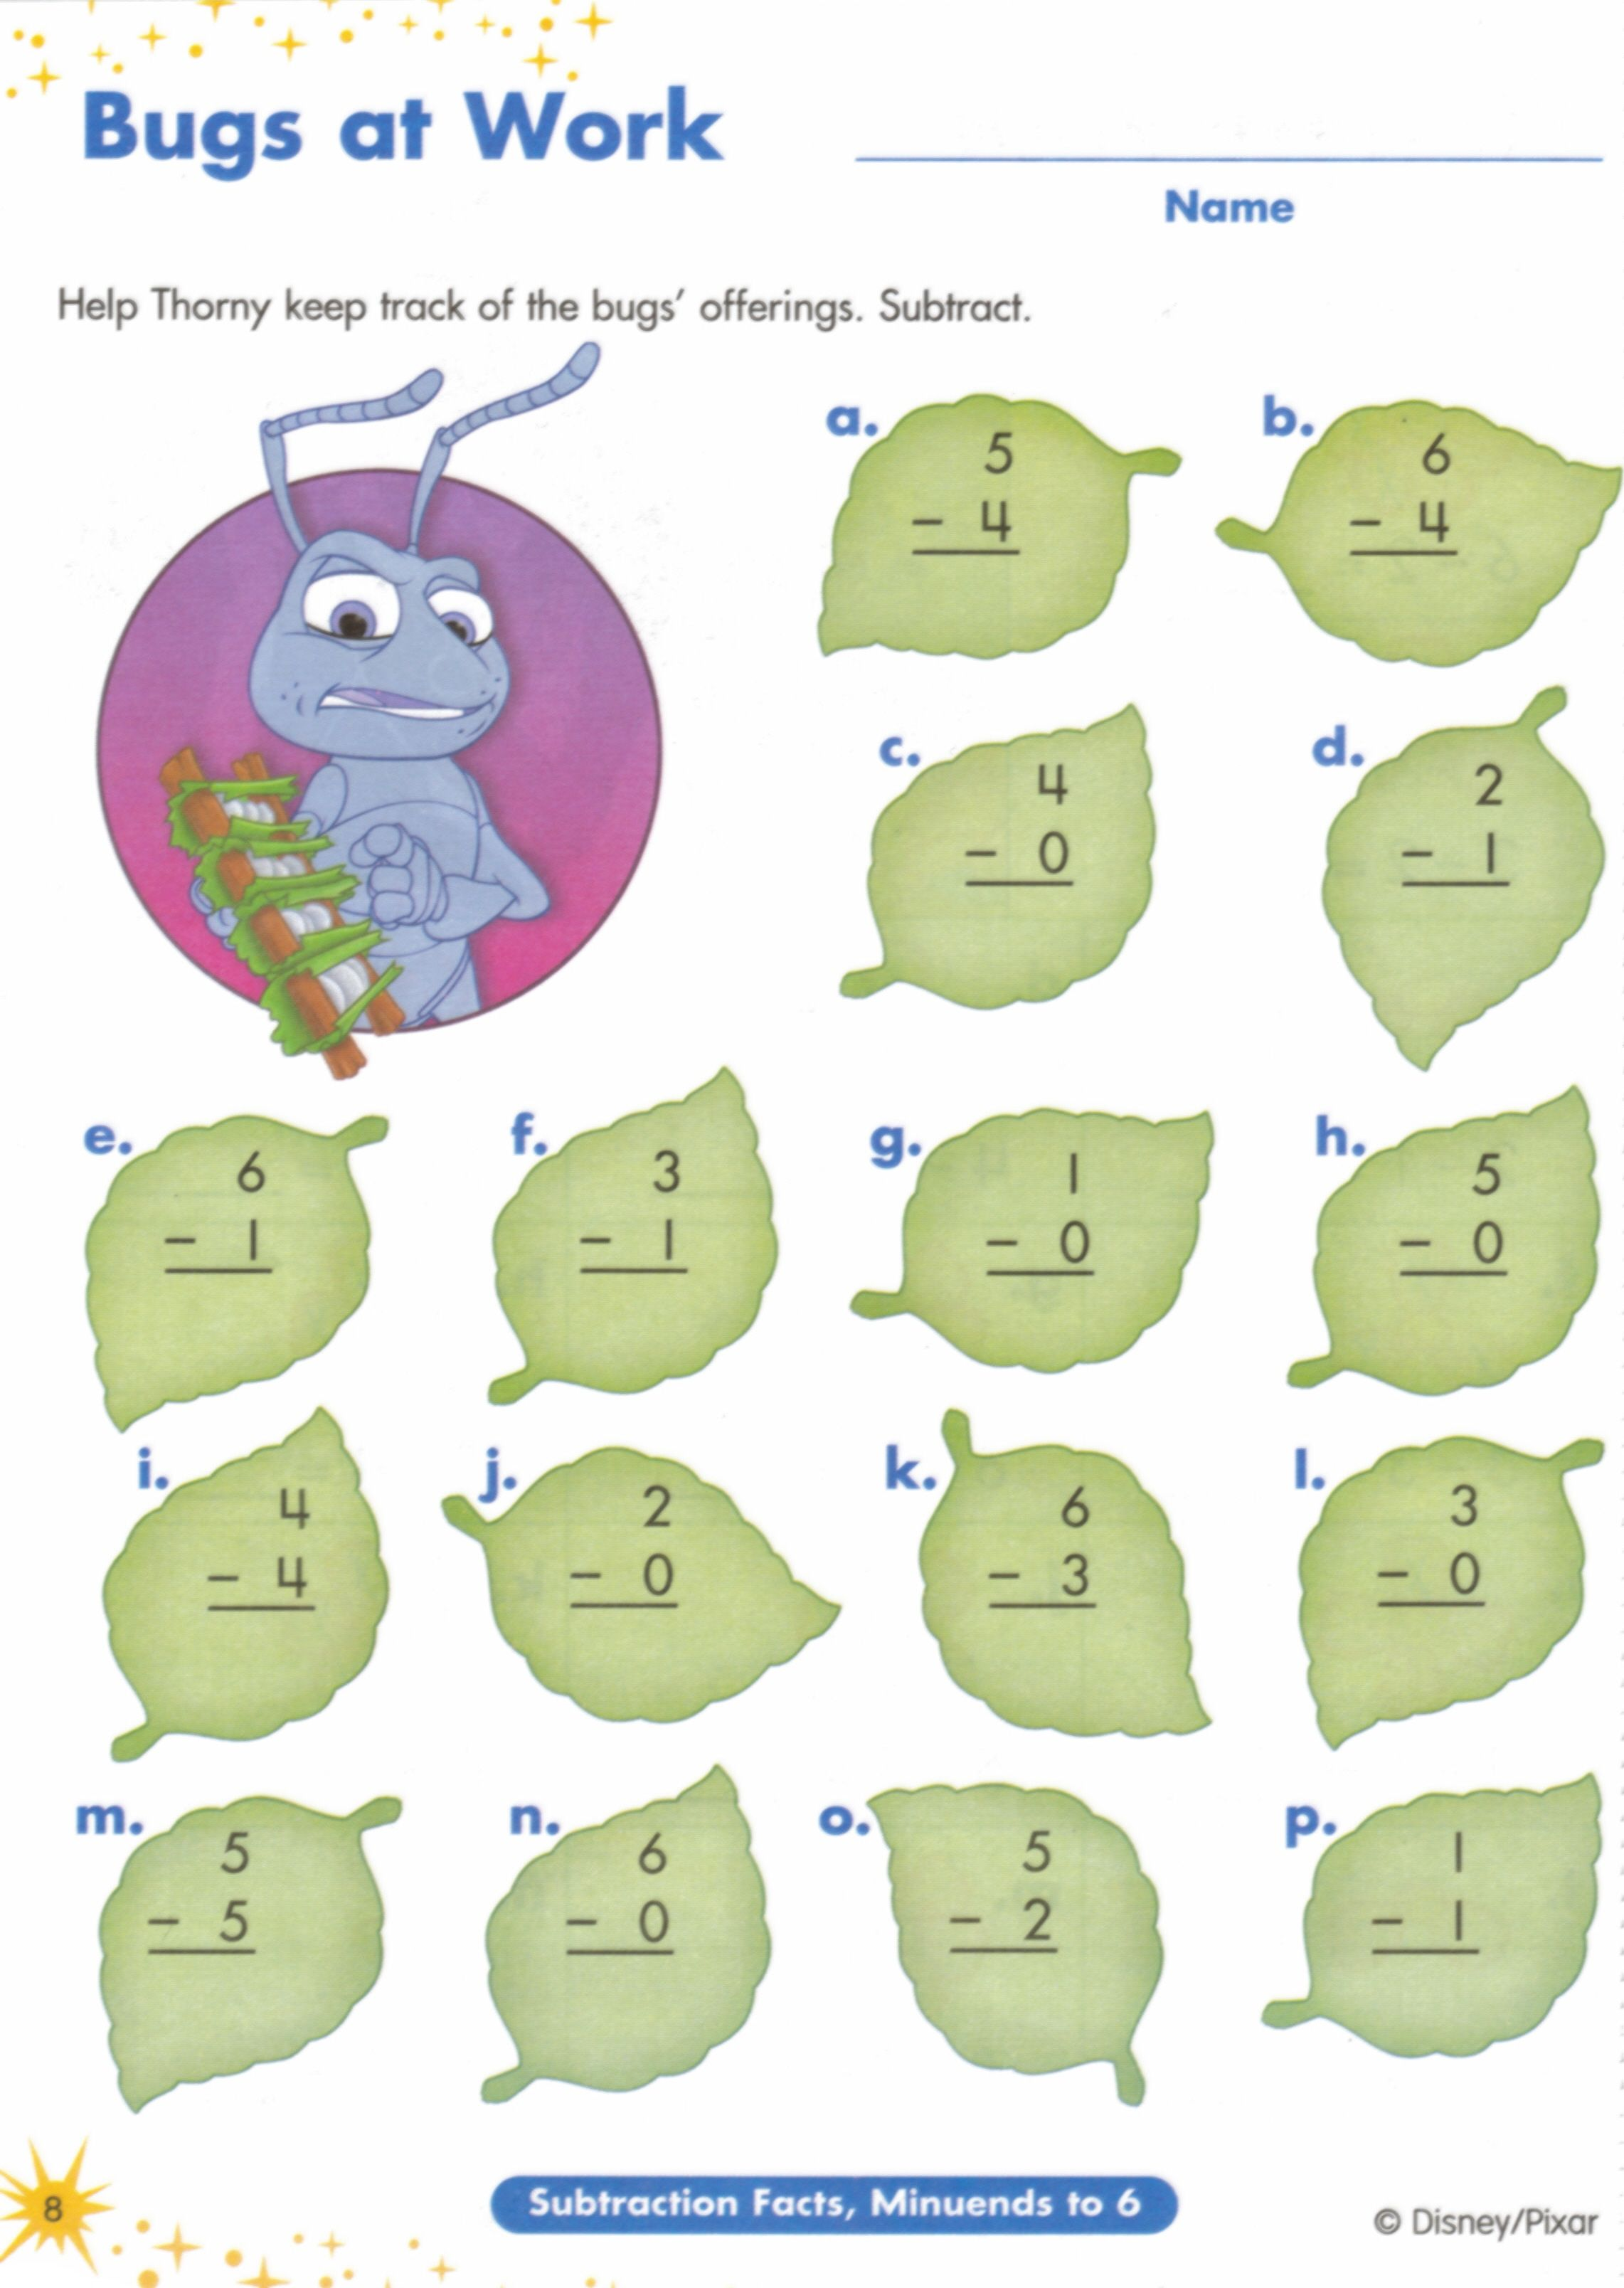 Proatmealus  Nice  Images About Worksheets On Pinterest  Fun Facts For Kids  With Gorgeous  Images About Worksheets On Pinterest  Fun Facts For Kids Earth Day Worksheets And Jungles With Amazing Esl Library Grammar Practice Worksheets Also Blank Graph Worksheet In Addition Super Techer Worksheets And Map Skills Worksheets Th Grade As Well As Apple Worksheets For Kindergarten Additionally All About Me Preschool Worksheet From Pinterestcom With Proatmealus  Gorgeous  Images About Worksheets On Pinterest  Fun Facts For Kids  With Amazing  Images About Worksheets On Pinterest  Fun Facts For Kids Earth Day Worksheets And Jungles And Nice Esl Library Grammar Practice Worksheets Also Blank Graph Worksheet In Addition Super Techer Worksheets From Pinterestcom